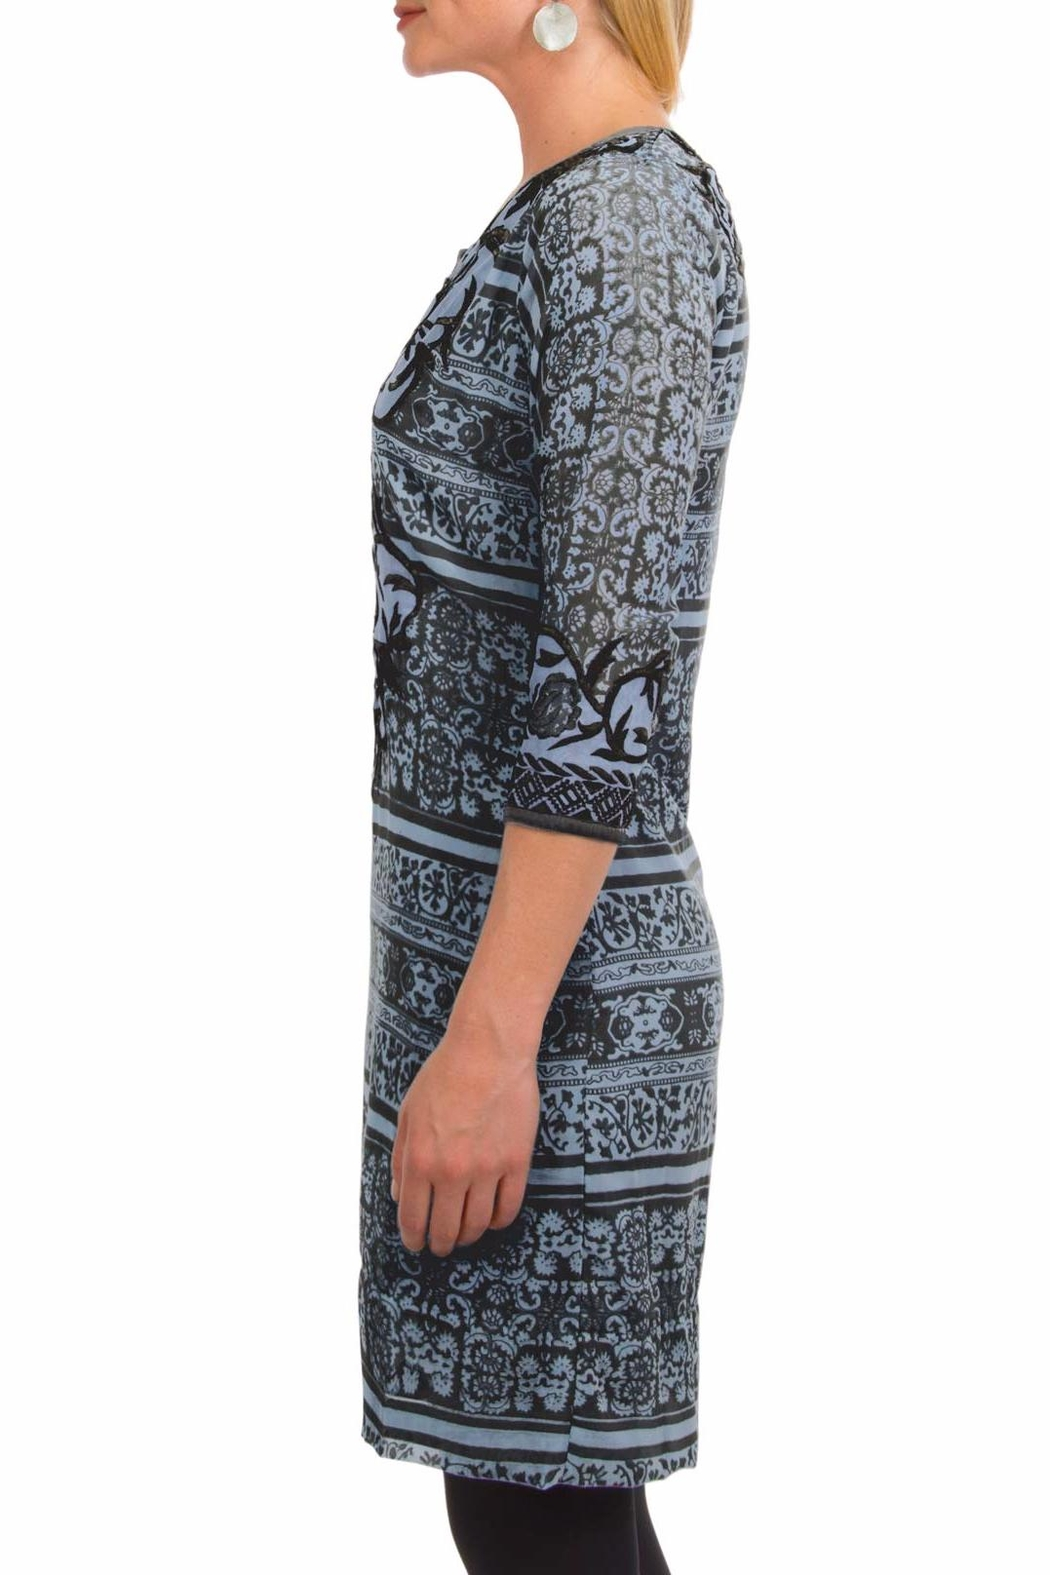 Gretchen Scott Georgette Embroidered Dress - Front Full Image